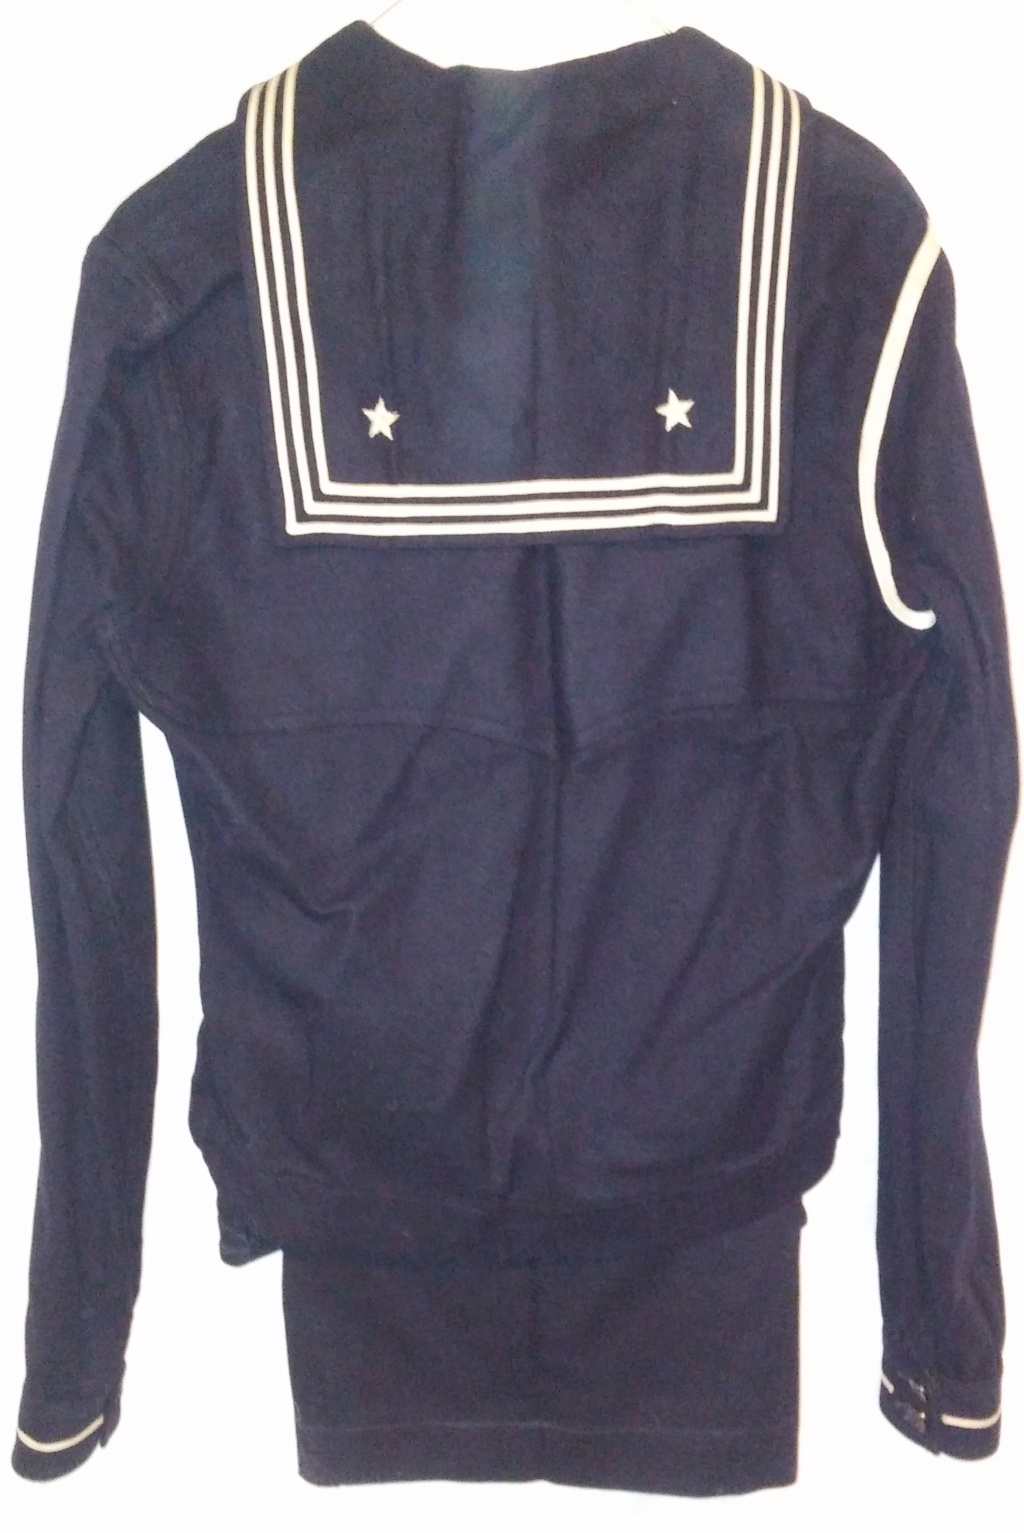 My Navy Jumper Collection 19700314